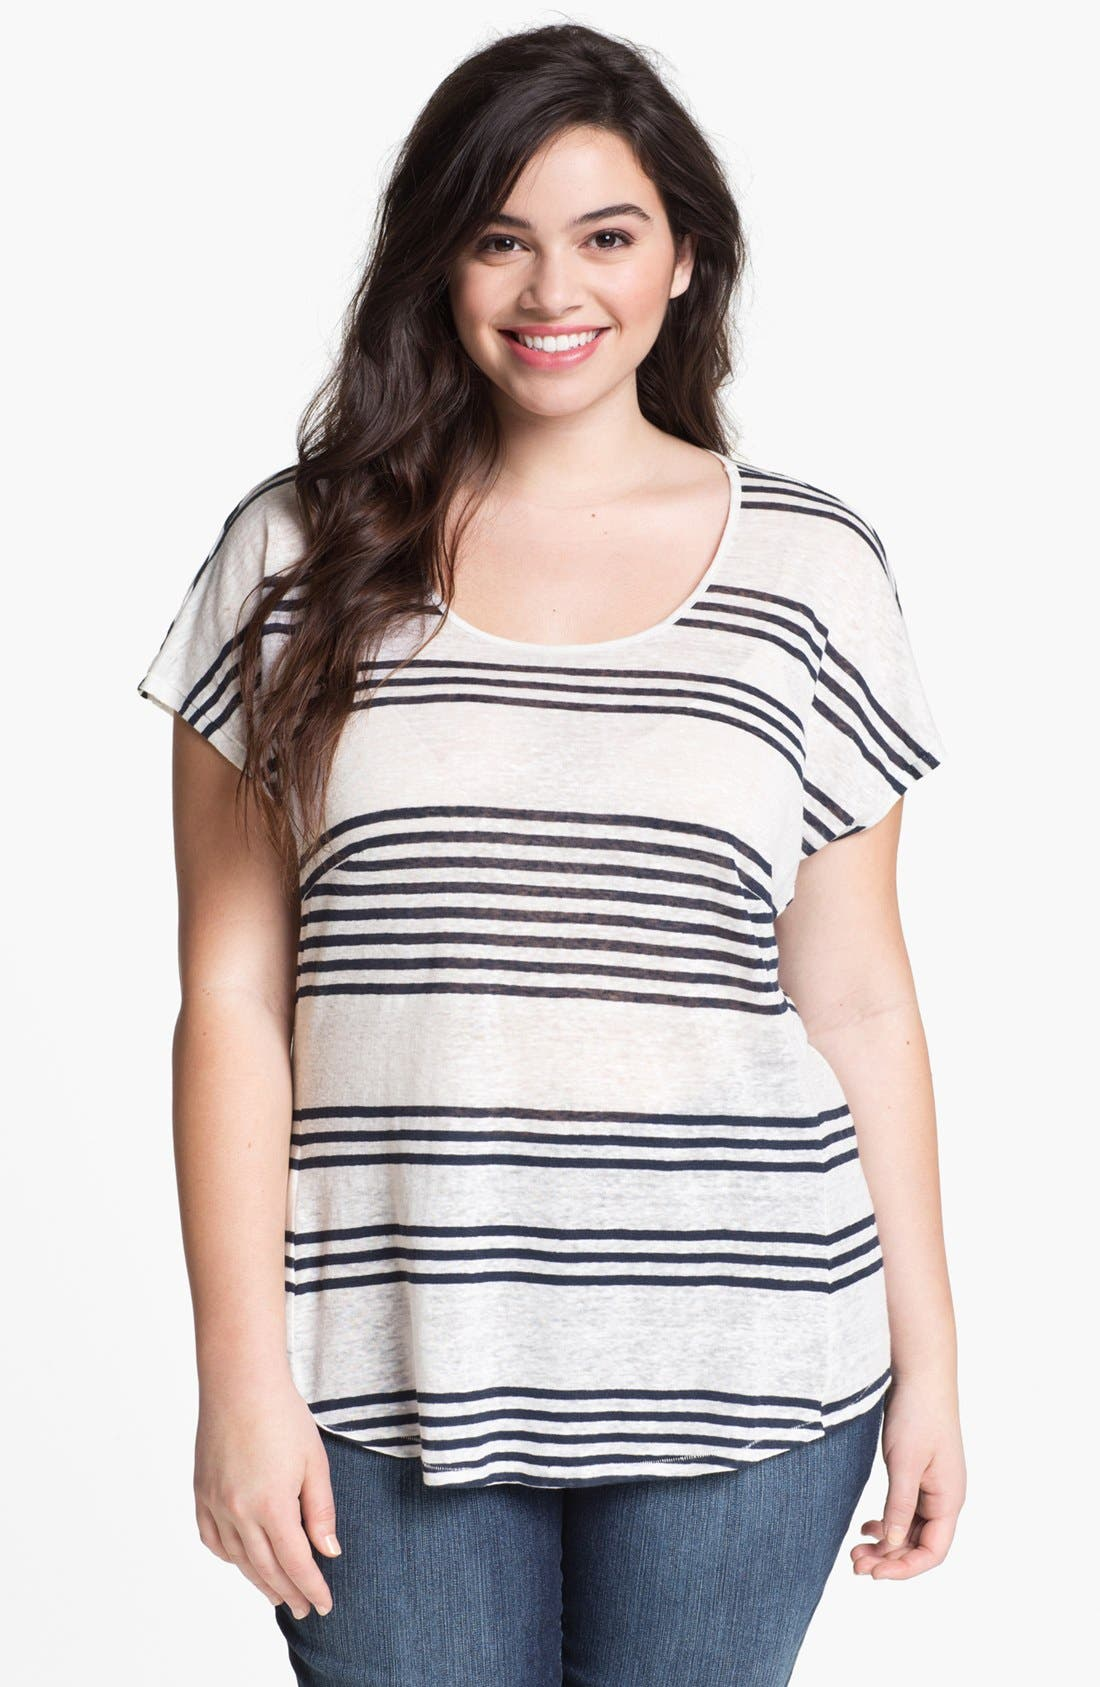 Alternate Image 1 Selected - Lucky Brand 'Arianna' Stripe Tee (Plus Size)